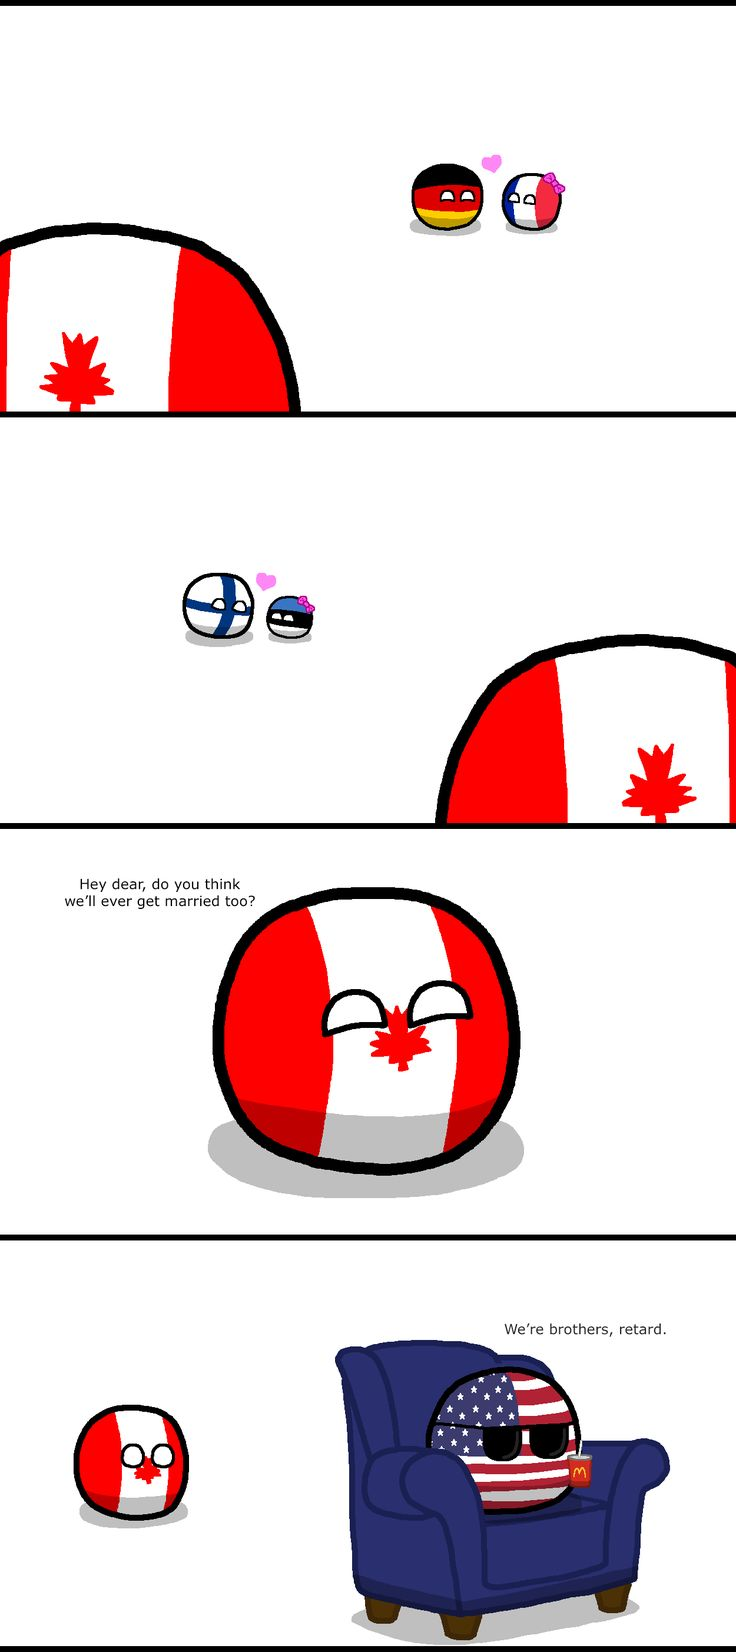 We have our own kind of love Canada, we'll always have our hat's back - Imgur